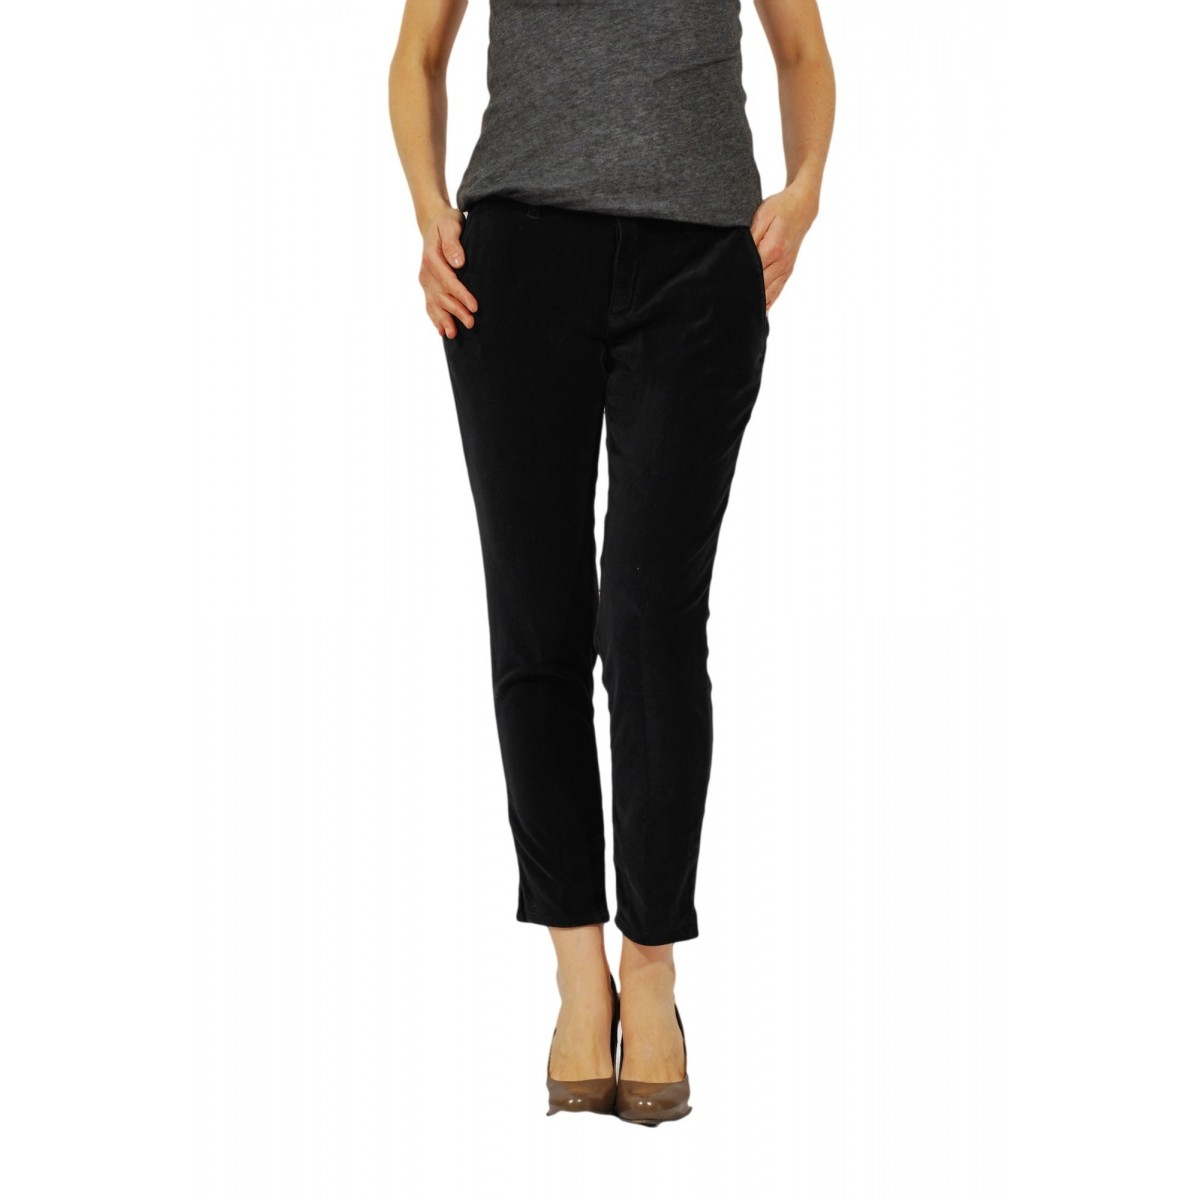 Pantalone Department Five donna - P052